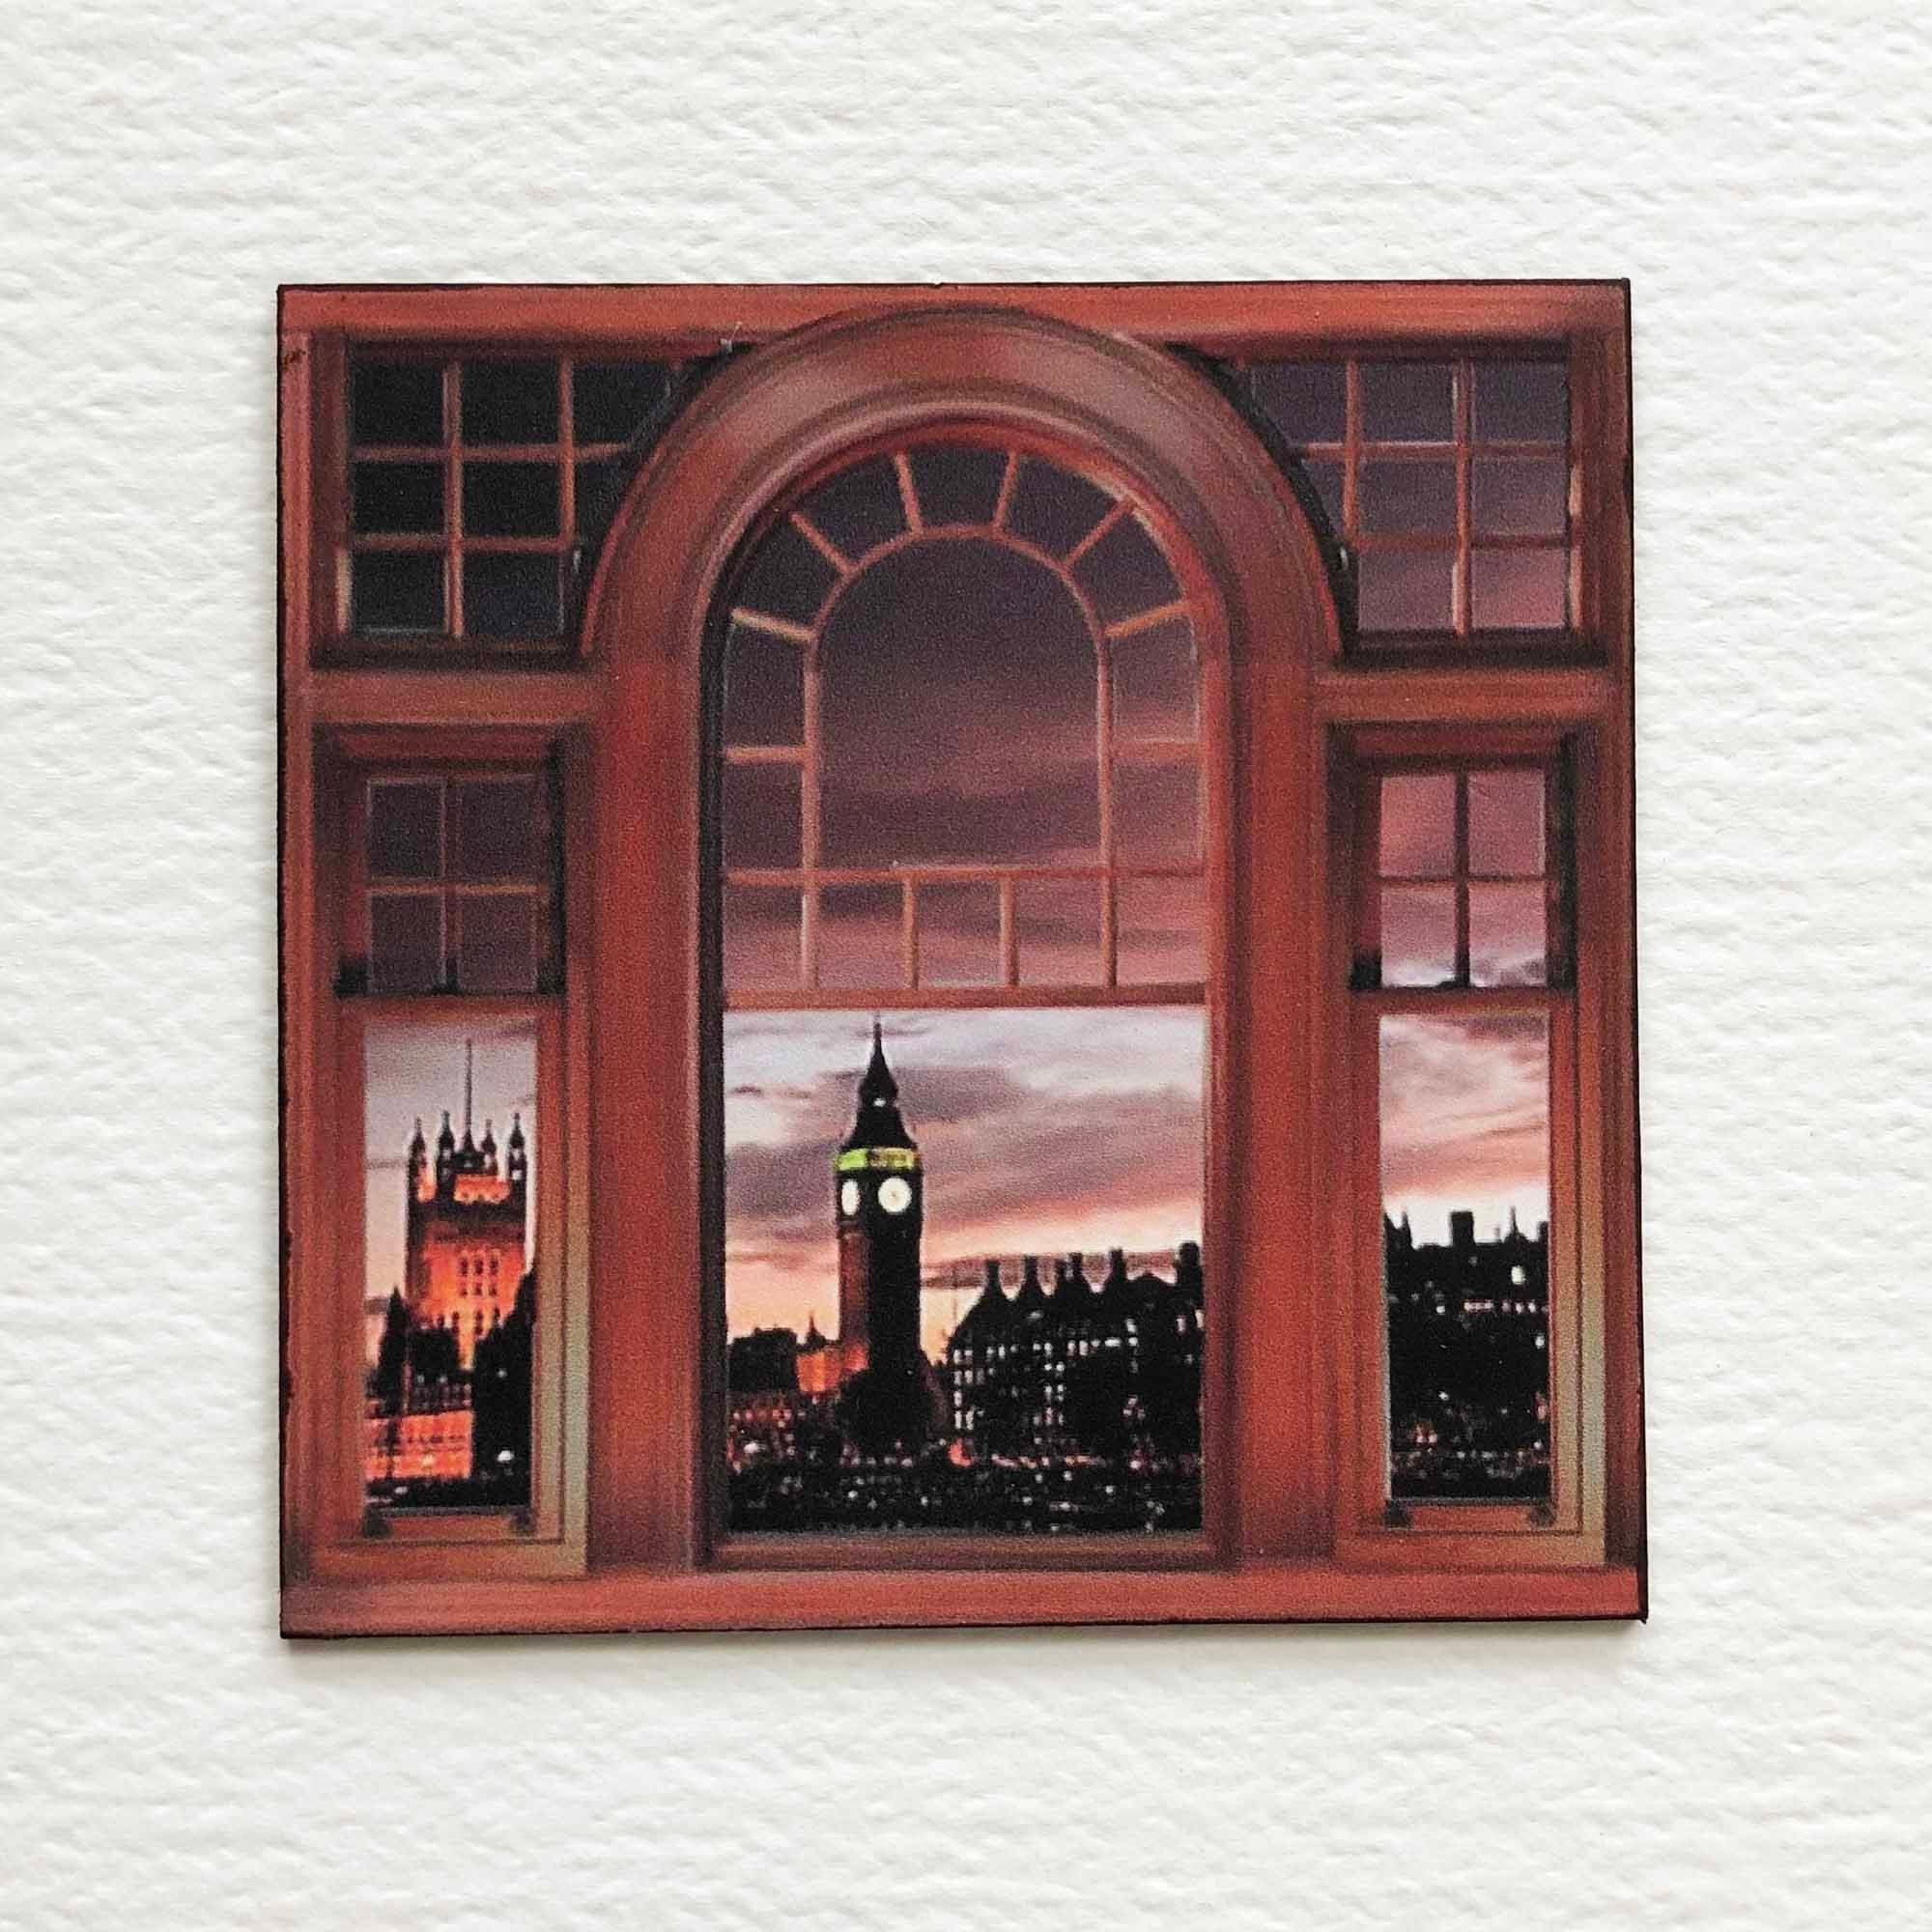 Faux Miniature Victorian Windows With View of London Houses of Parliament and Big Ben